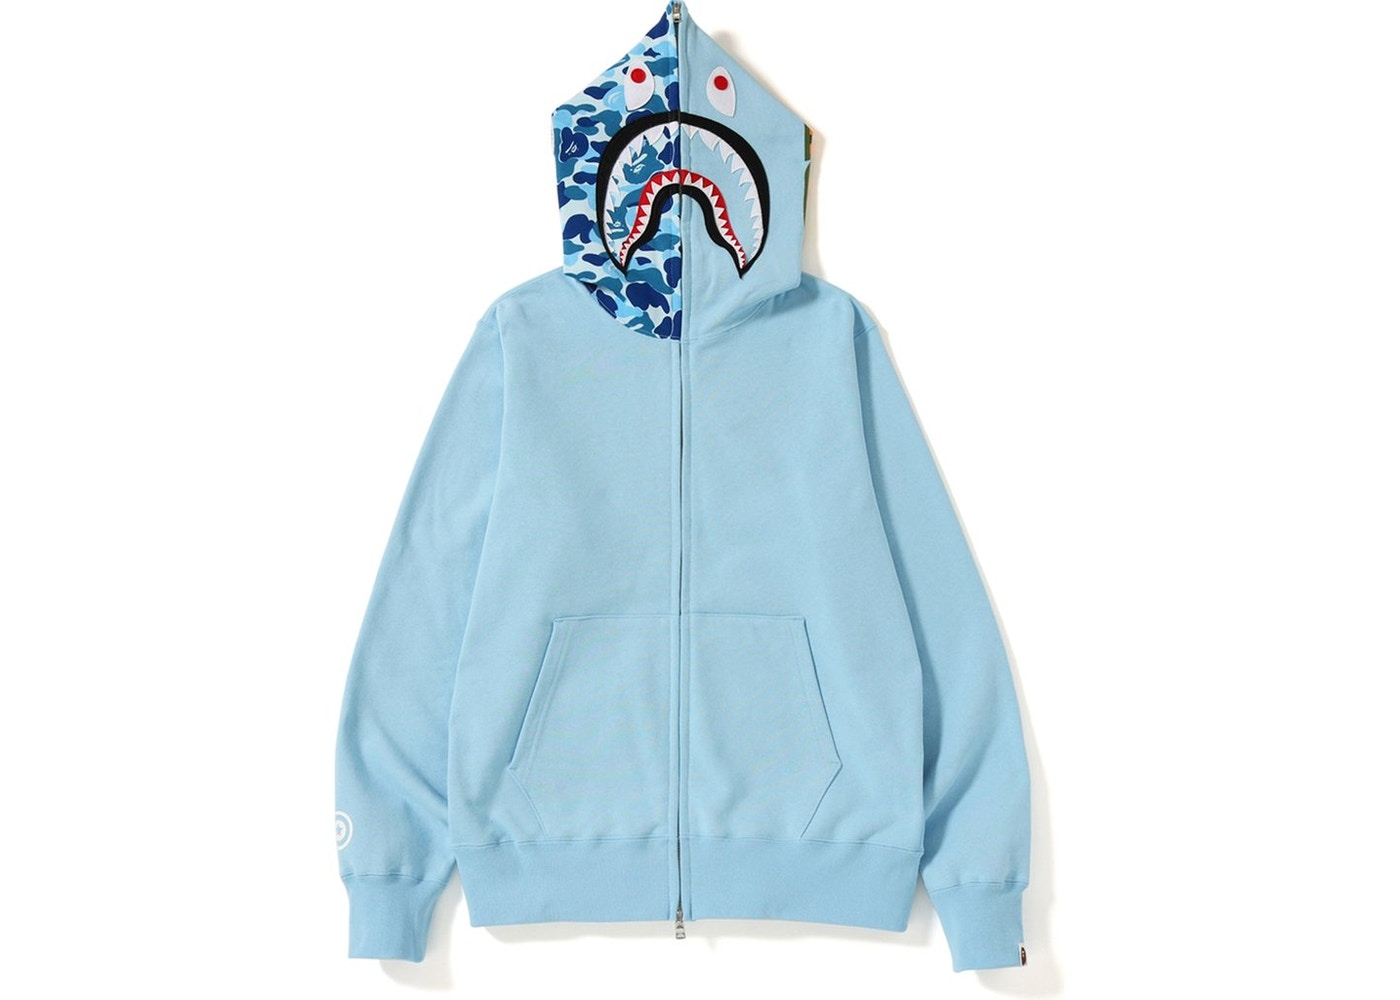 e30c79ab Sell. or Ask. Size: XL. View All Bids. BAPE ABC Shark Full Zip Hoodie  (SS19) Blue